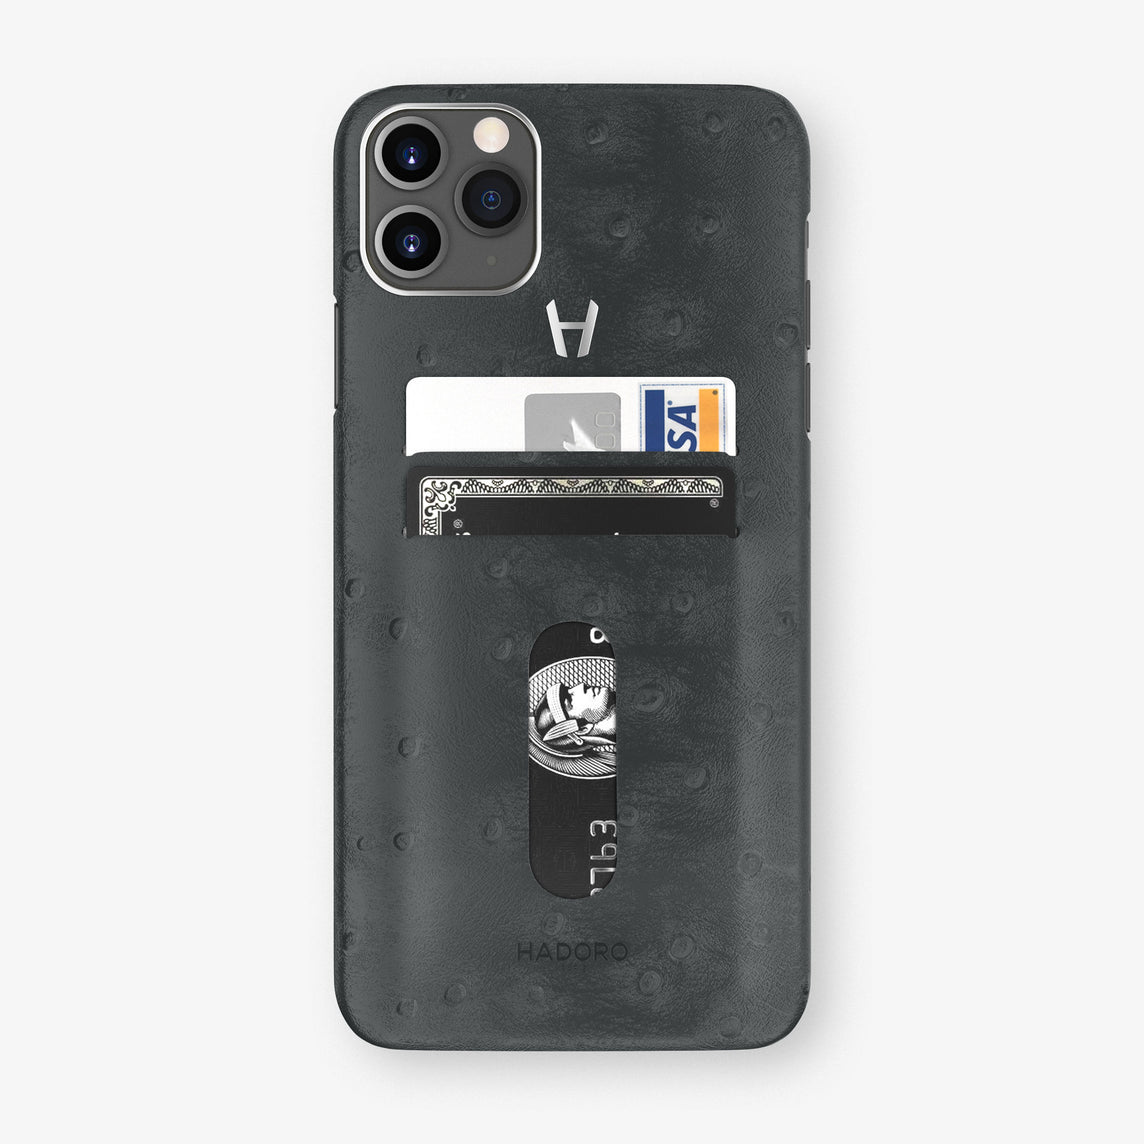 Ostrich Card Holder Case iPhone 11 Pro Max | Anthracite Grey - Stainless Steel